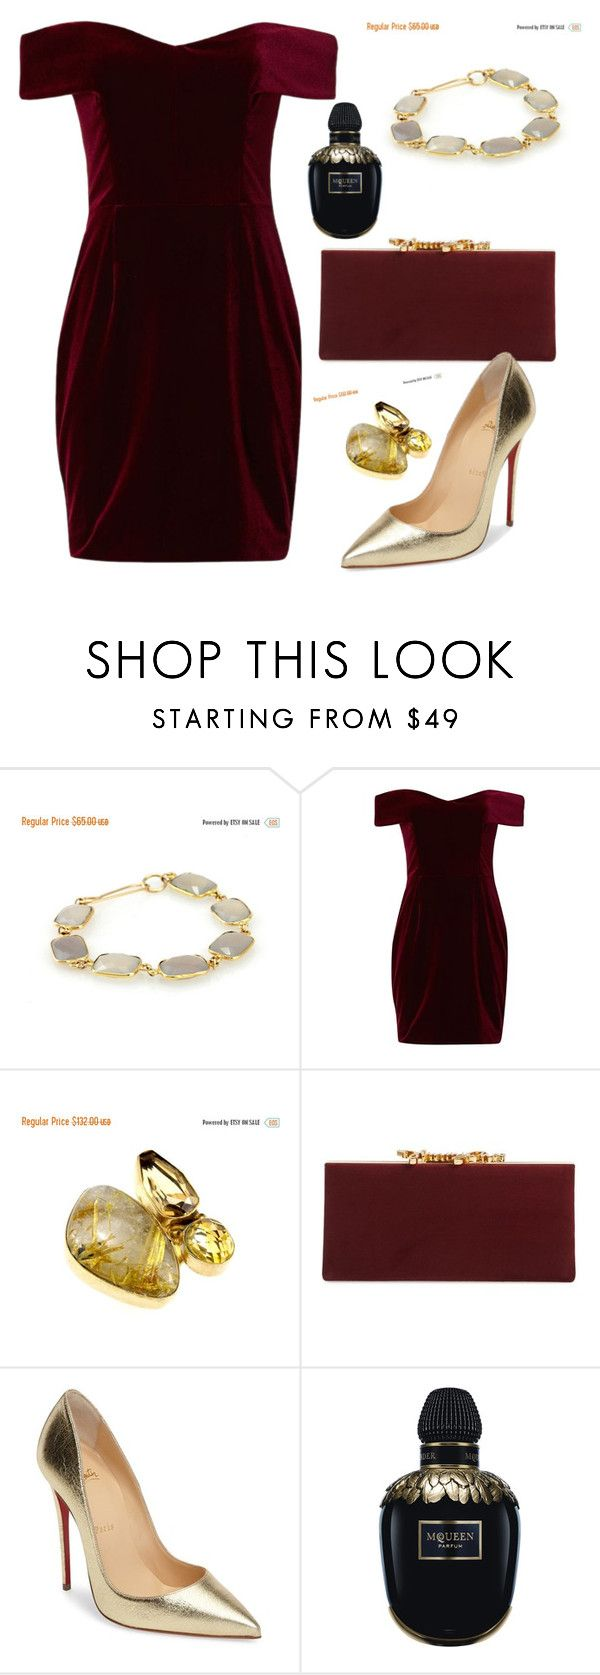 """batyas"" by elly-852 ❤ liked on Polyvore featuring Nicholas, Jimmy Choo, Christian Louboutin and Alexander McQueen"